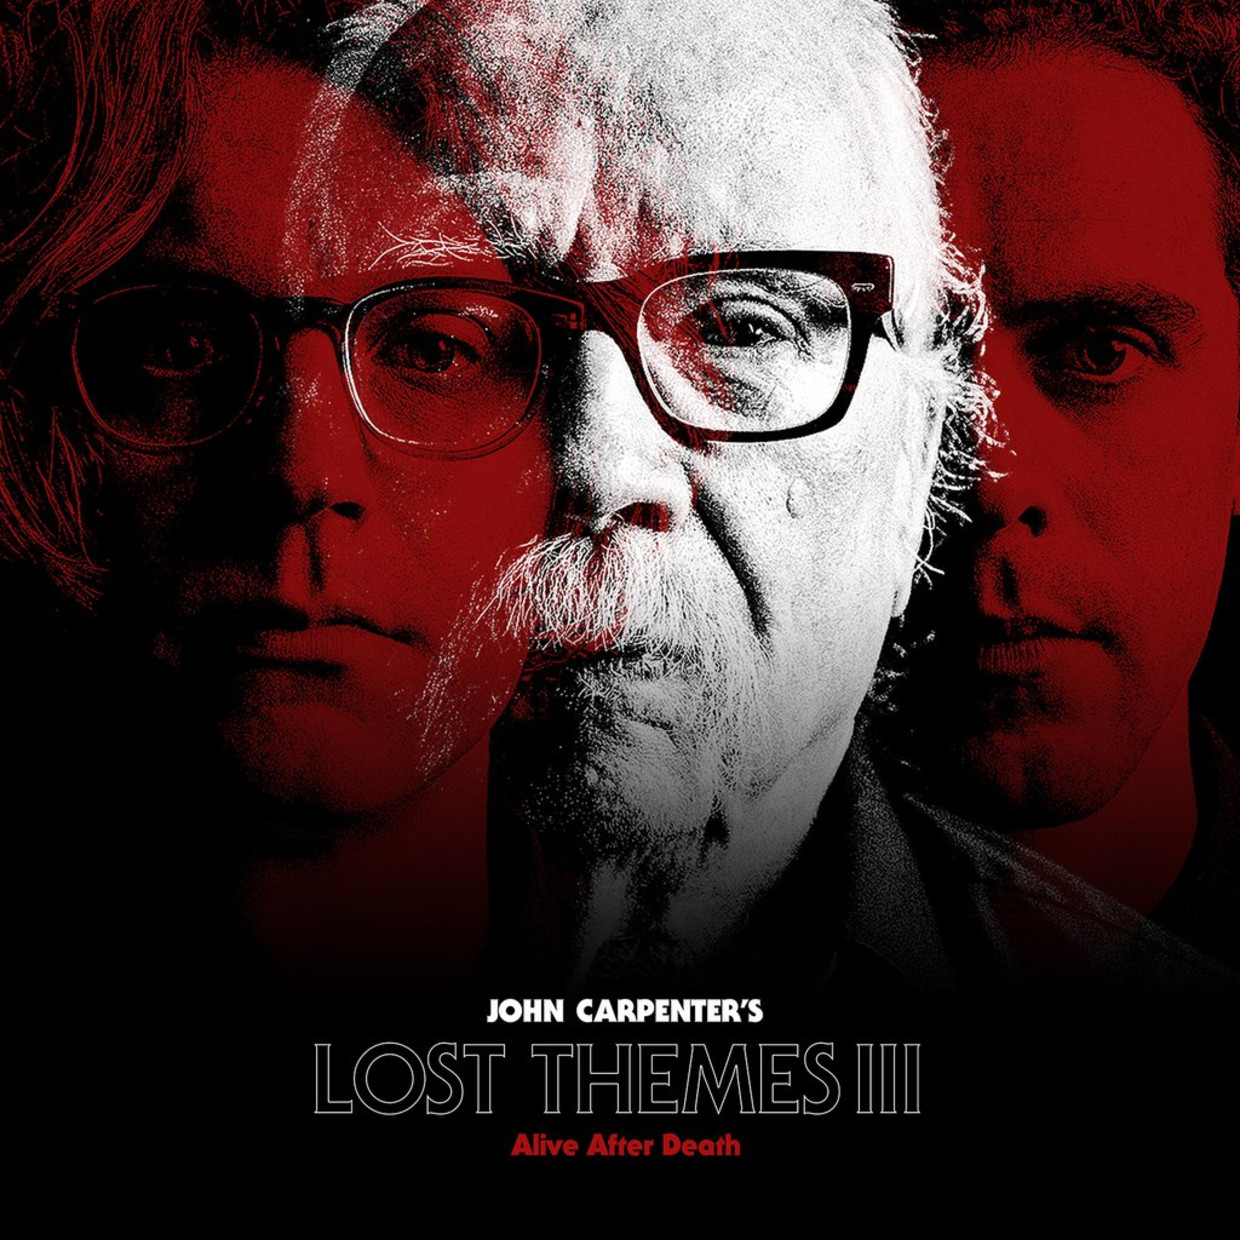 JOHN CARPENTER Lost Themes III: Alive After Death Beeld RV